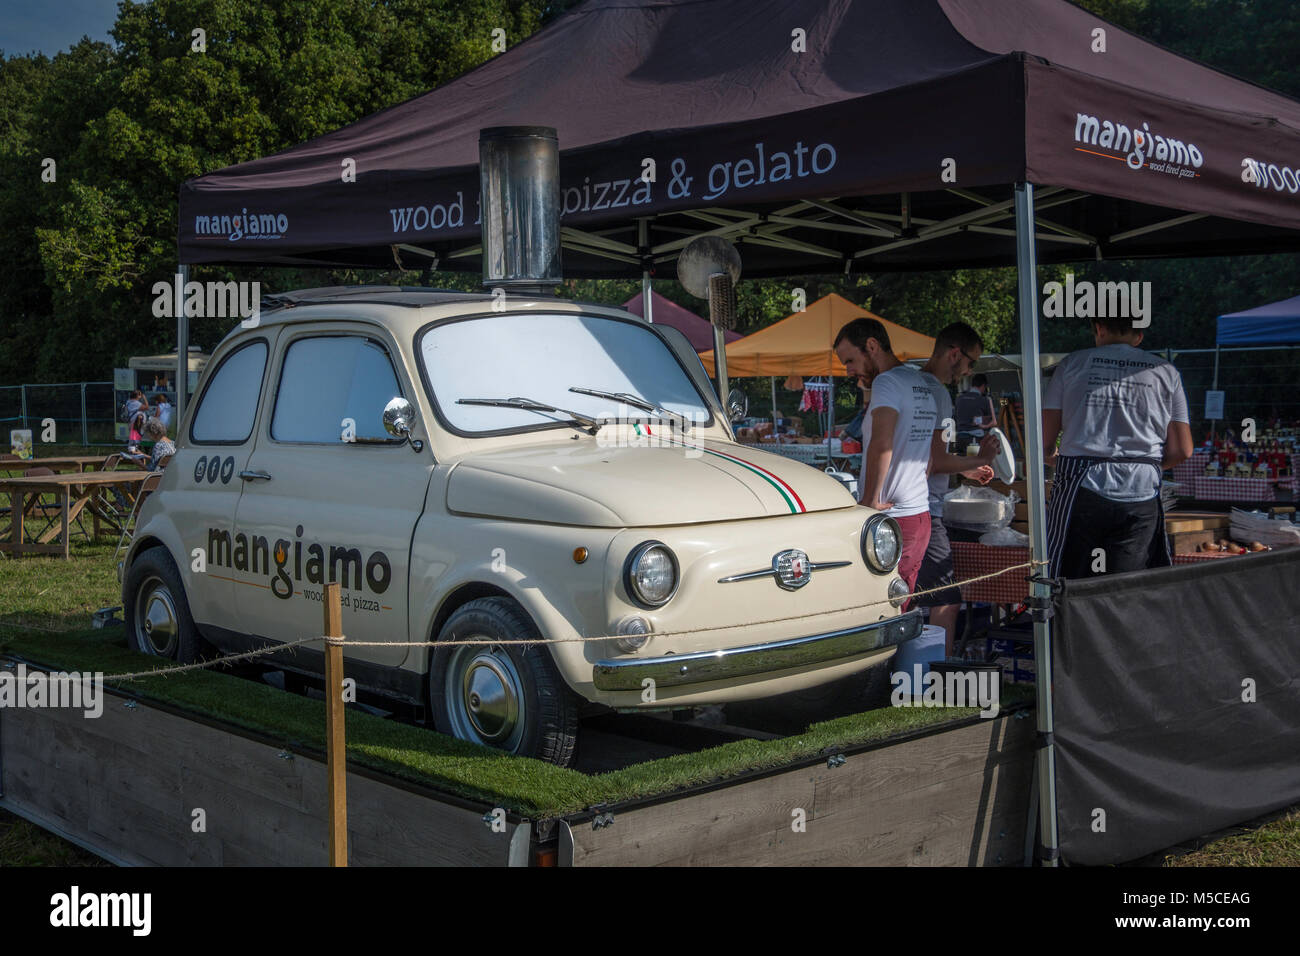 Fiat 500 Car Show Stock Photos Images Alamy 1970 For Sale A Coverted Into Pizza Oven Image